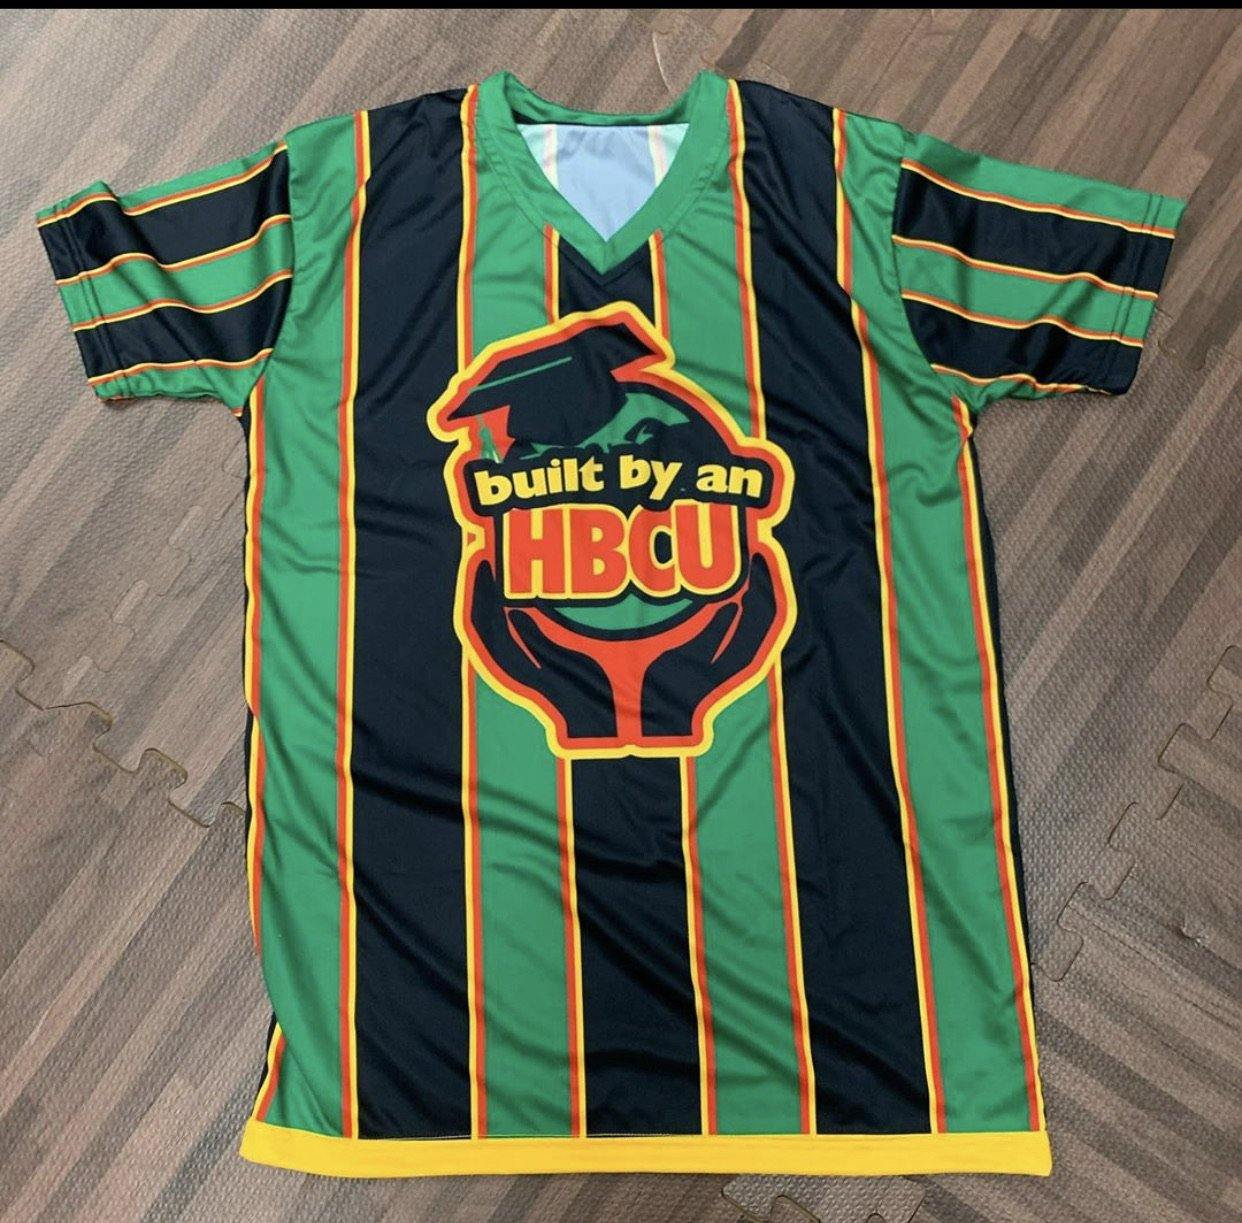 Built by an hbcu jersey